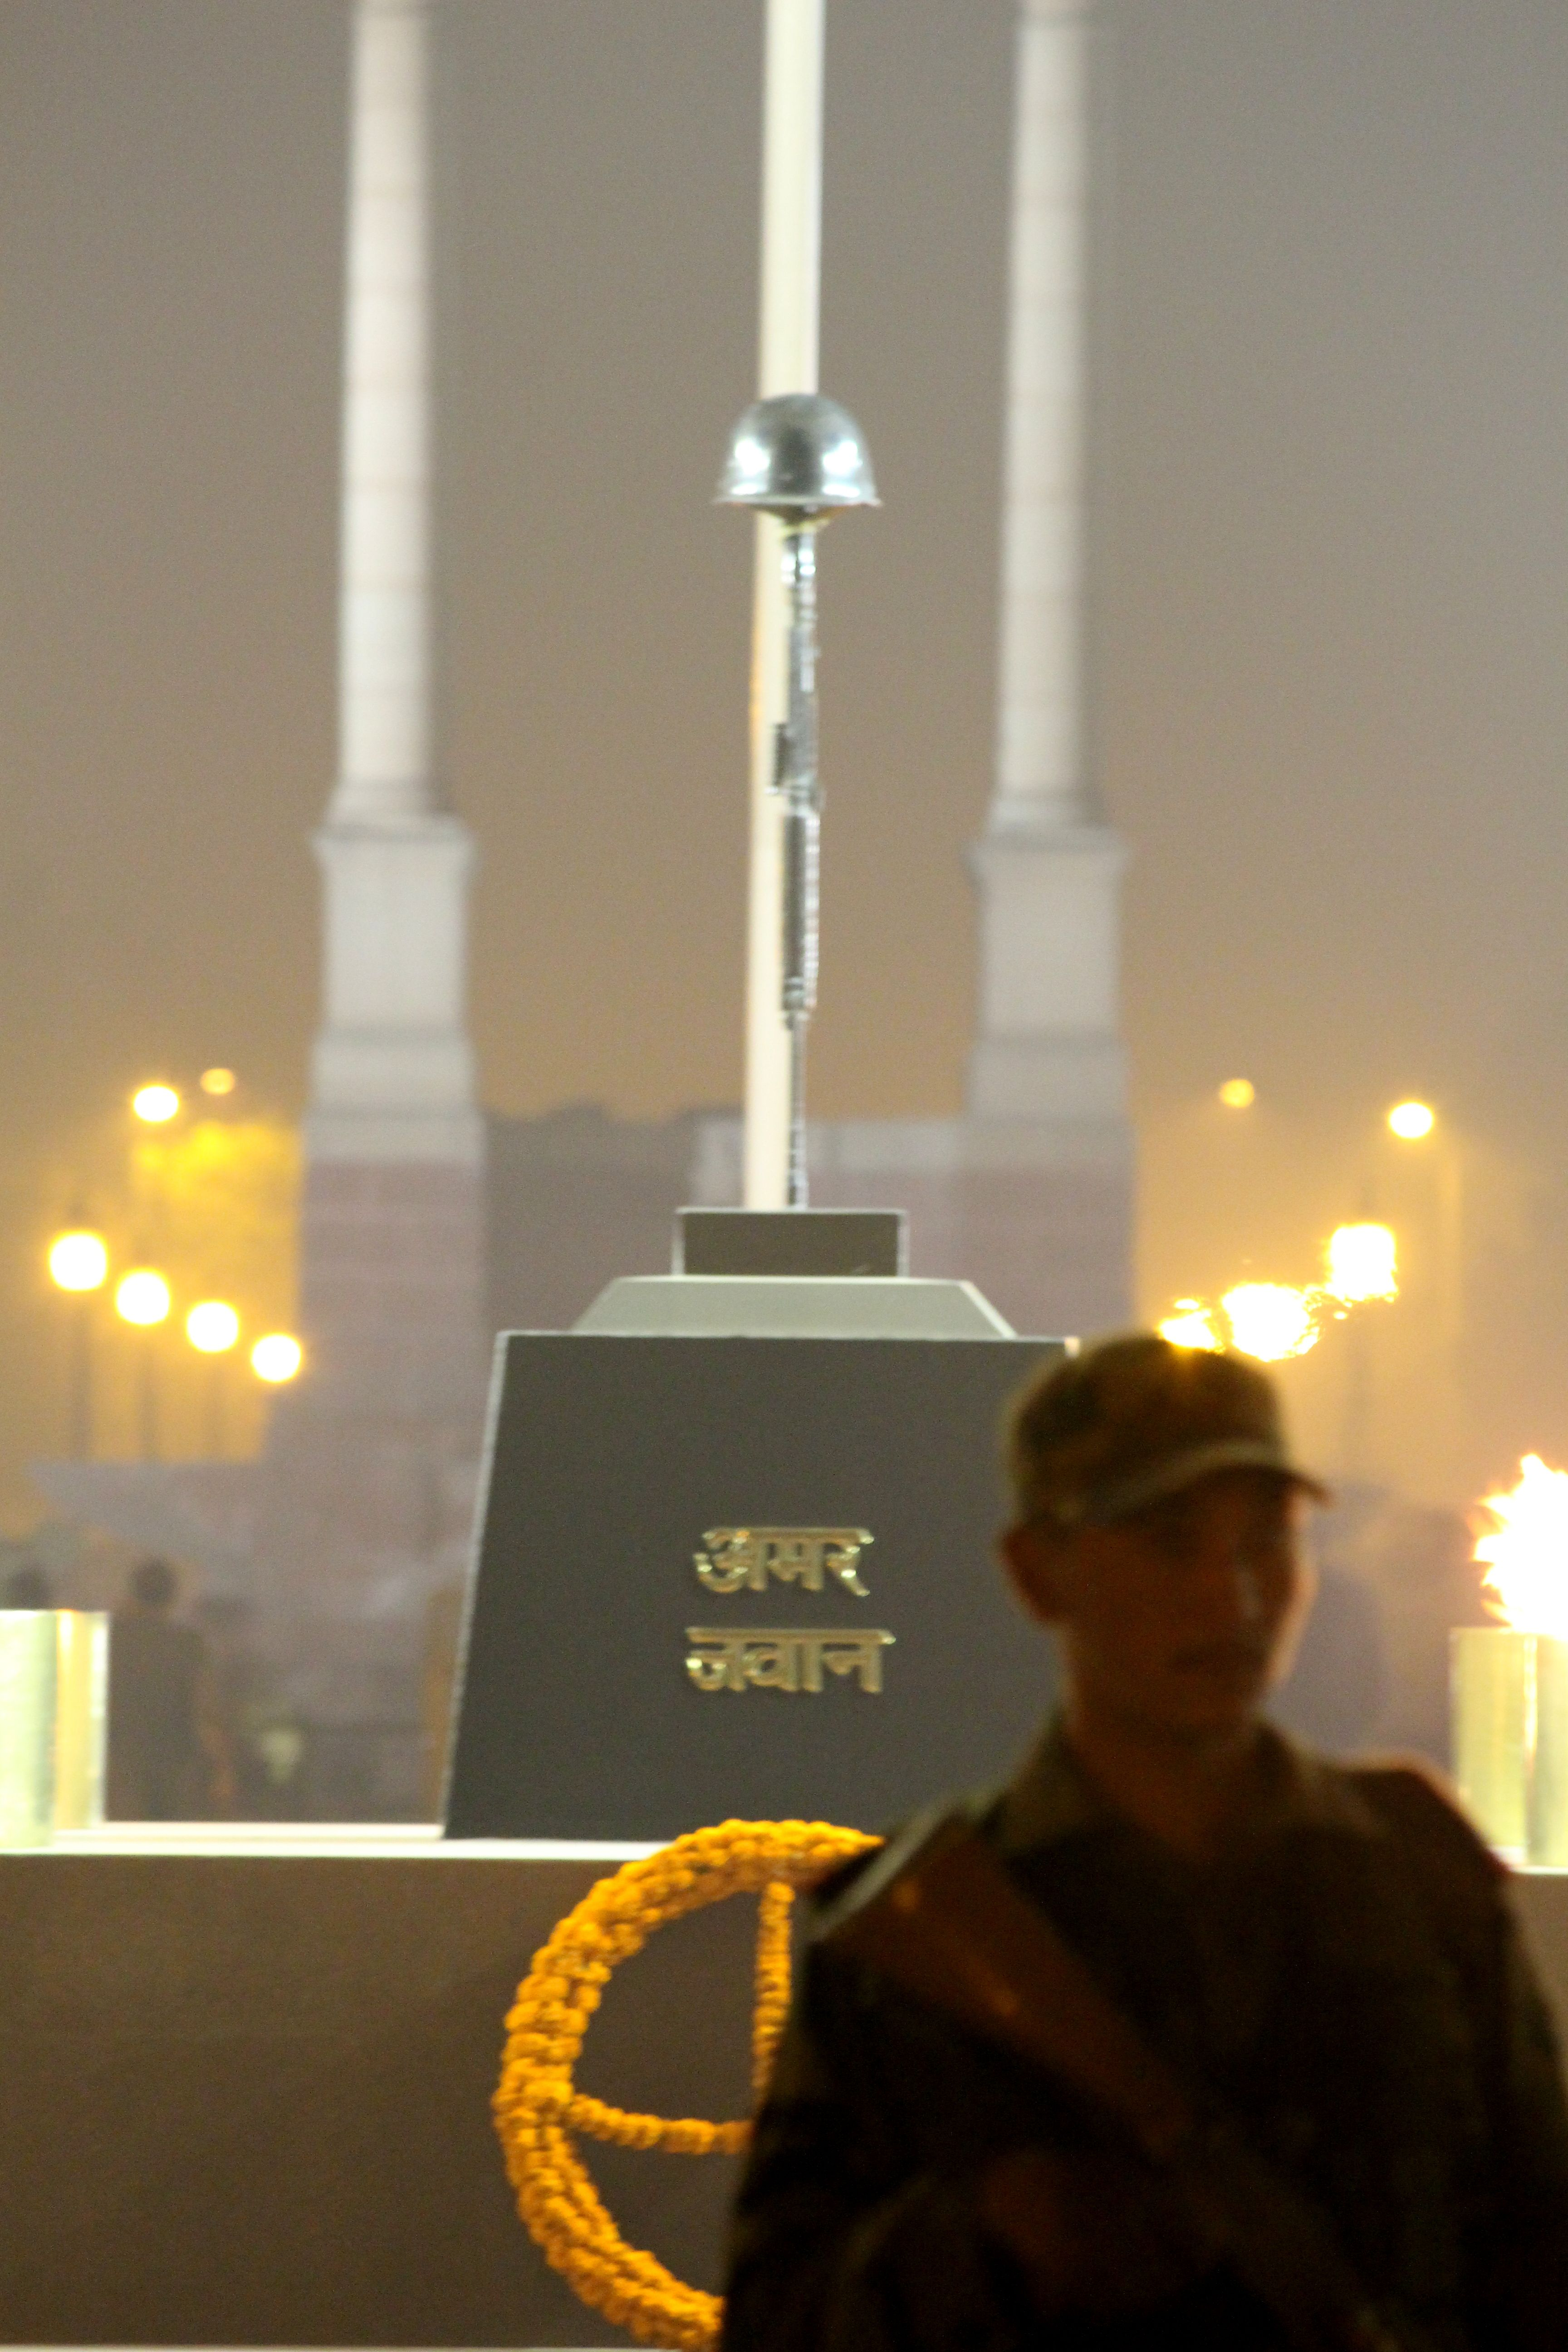 Amar jawan jyoti it is since 1971 that a flame which is often known amar jawan jyoti it is since 1971 that a flame which is often known as amar thecheapjerseys Images